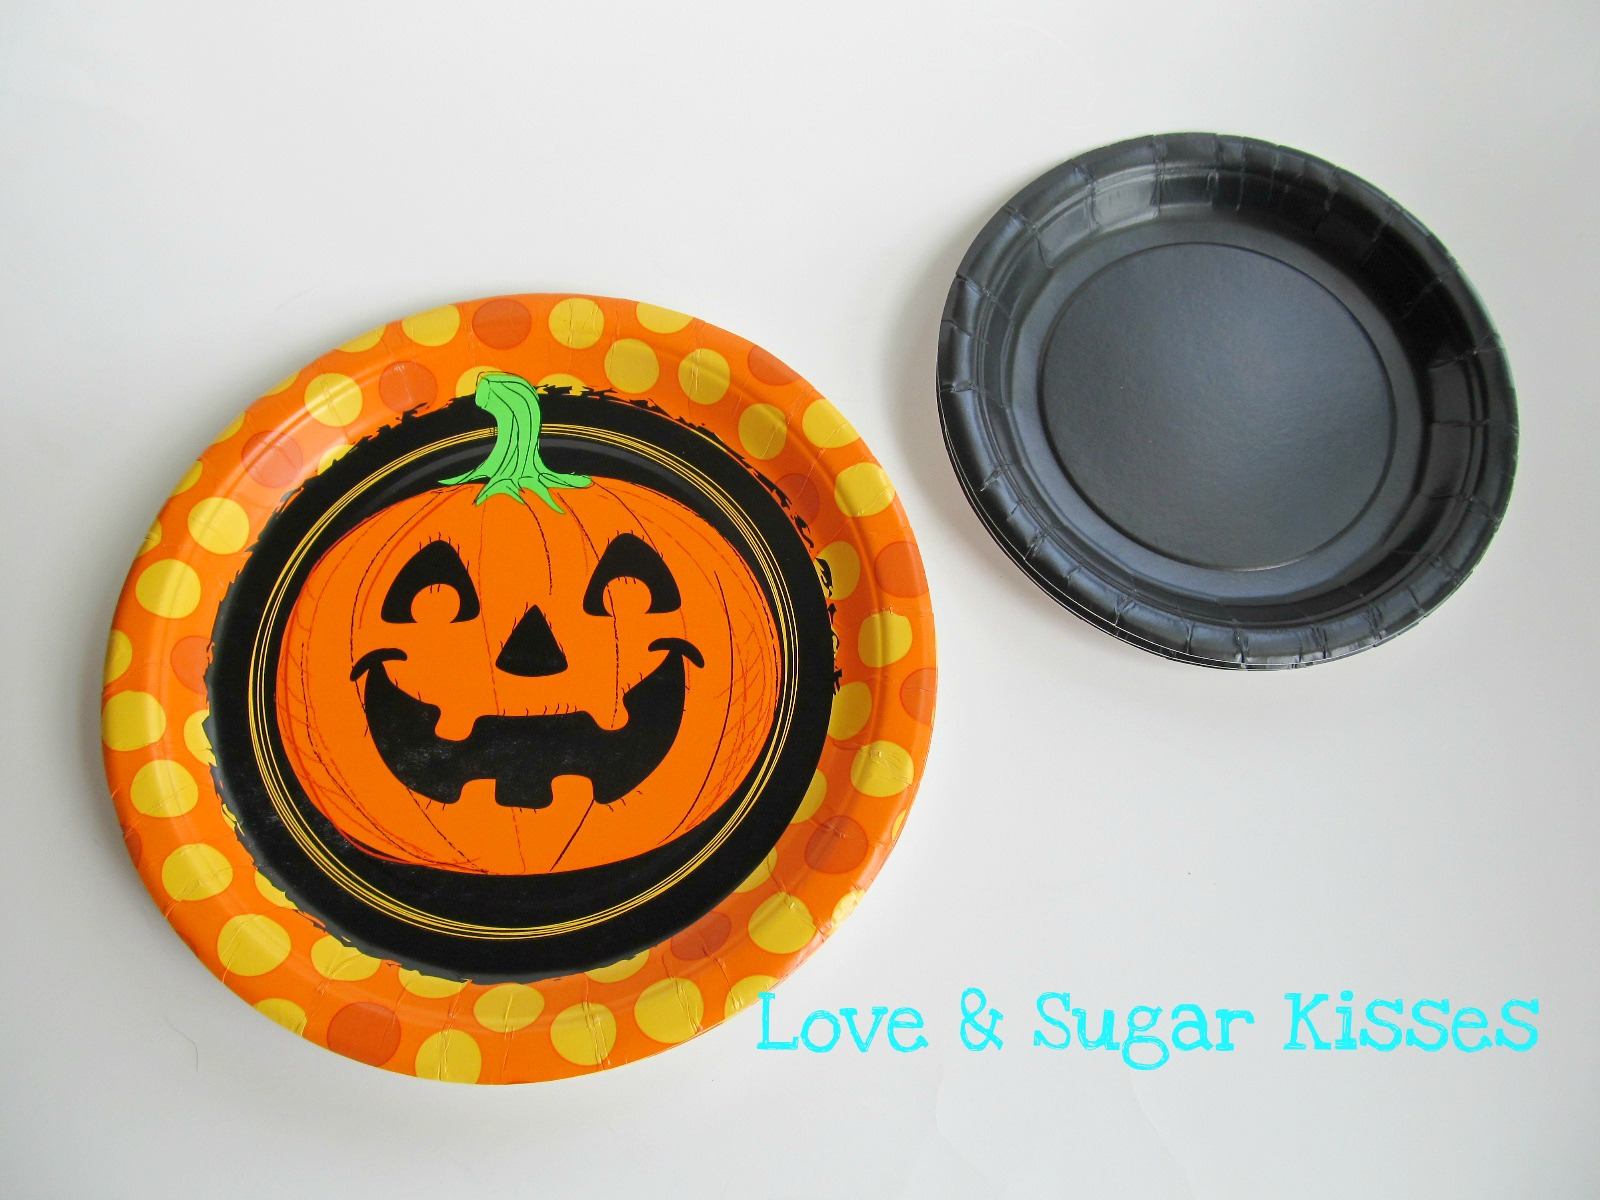 Love sugar kisses diy halloween paper plate garland paper plates in 2 sizes ribbon adhesive i used a glue dot runner cardstock foam glitter sheets hole punch i found these paper plates for 97 cents a jeuxipadfo Image collections